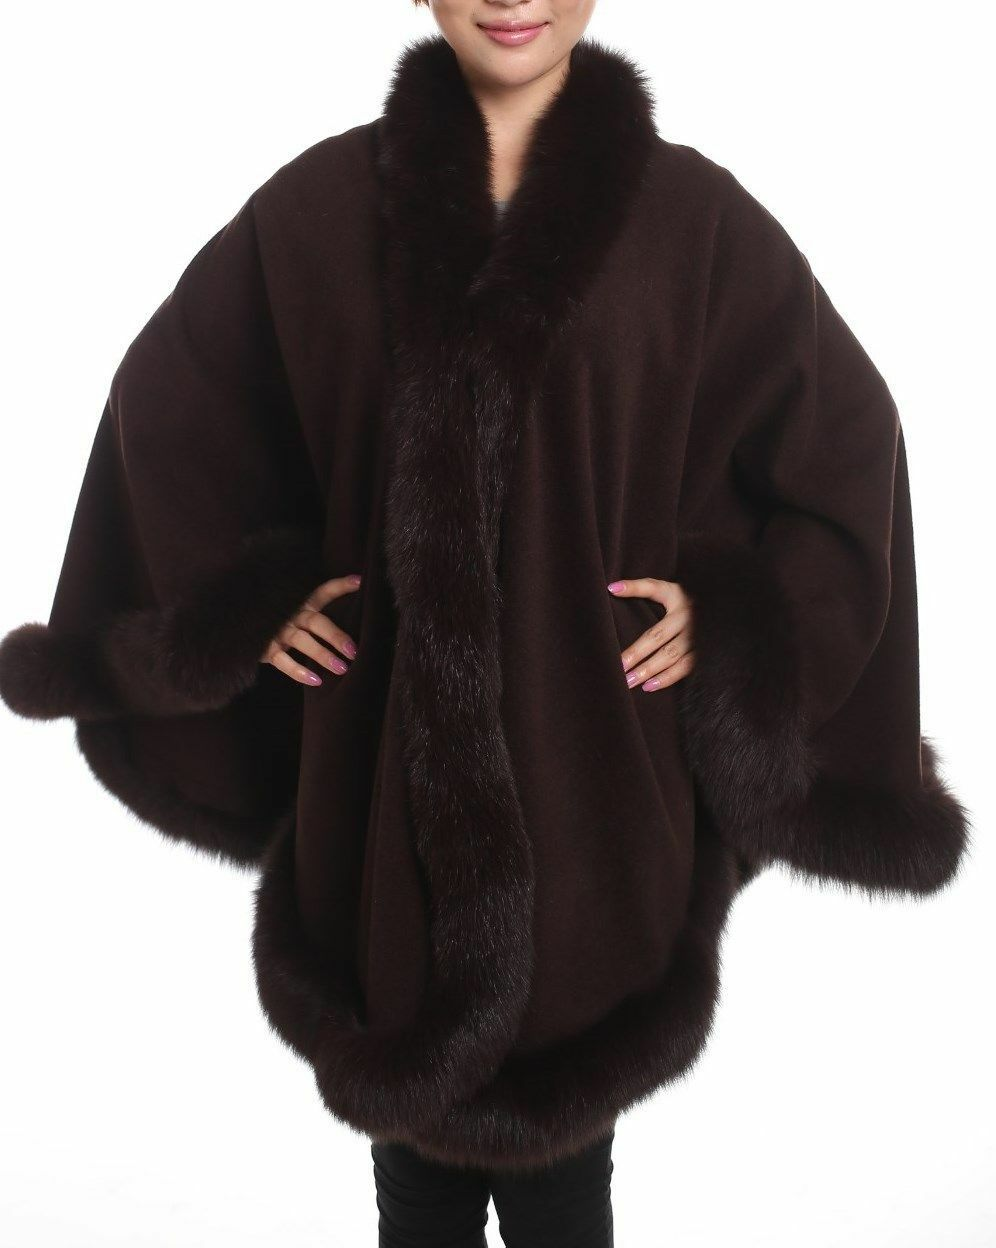 CHOCOLATE BROWN FOX FULL SKIN TRIMMED 100% CASHMERE SWING CAPE WRAP COAT